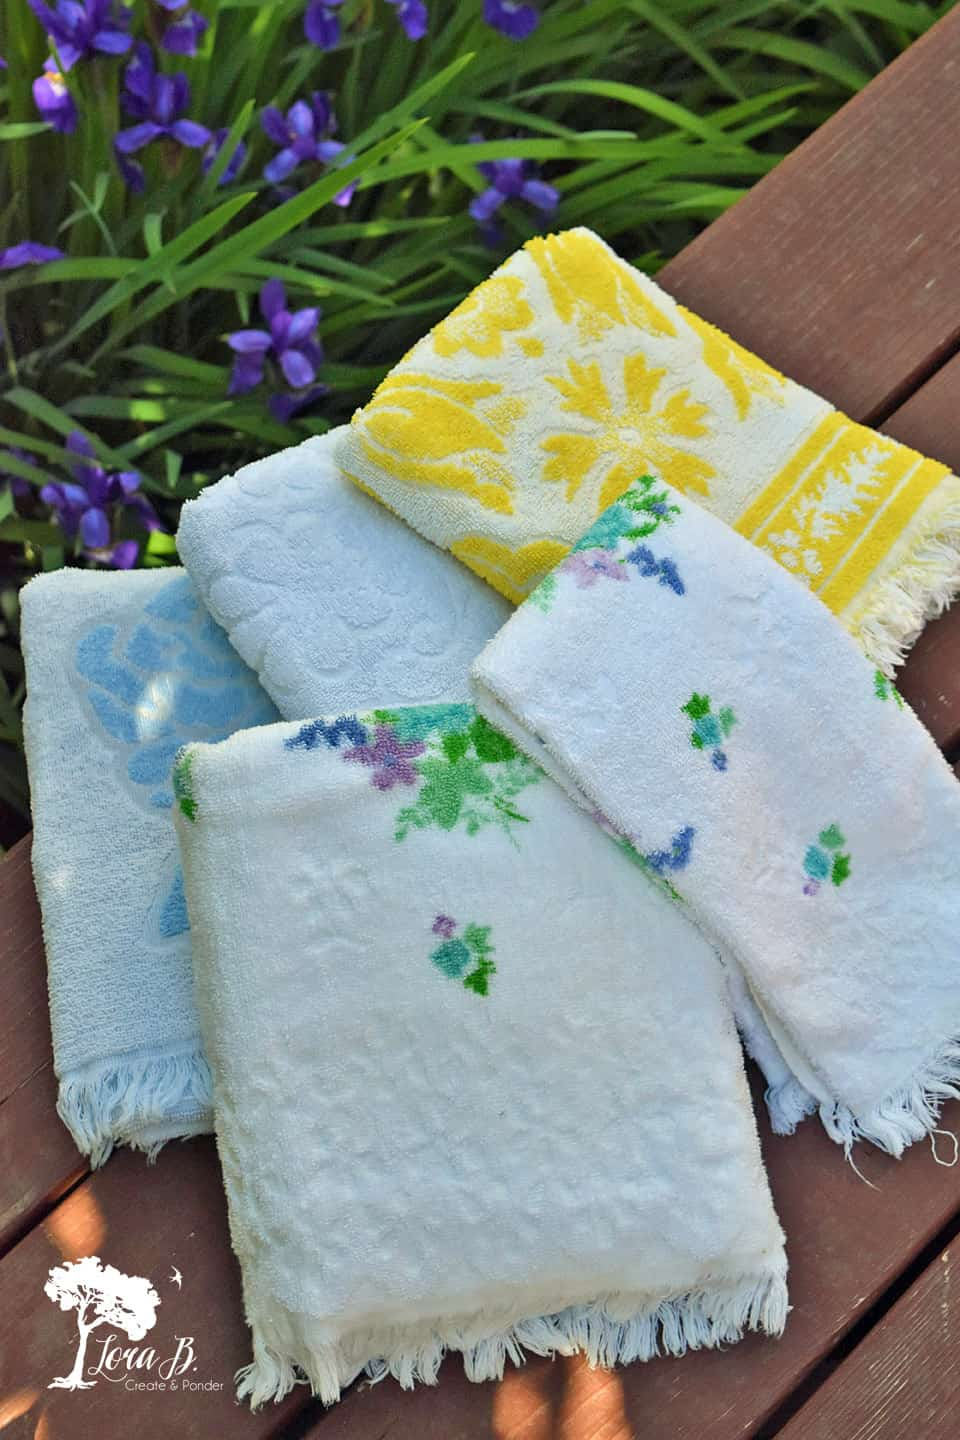 Vintage flowered towels